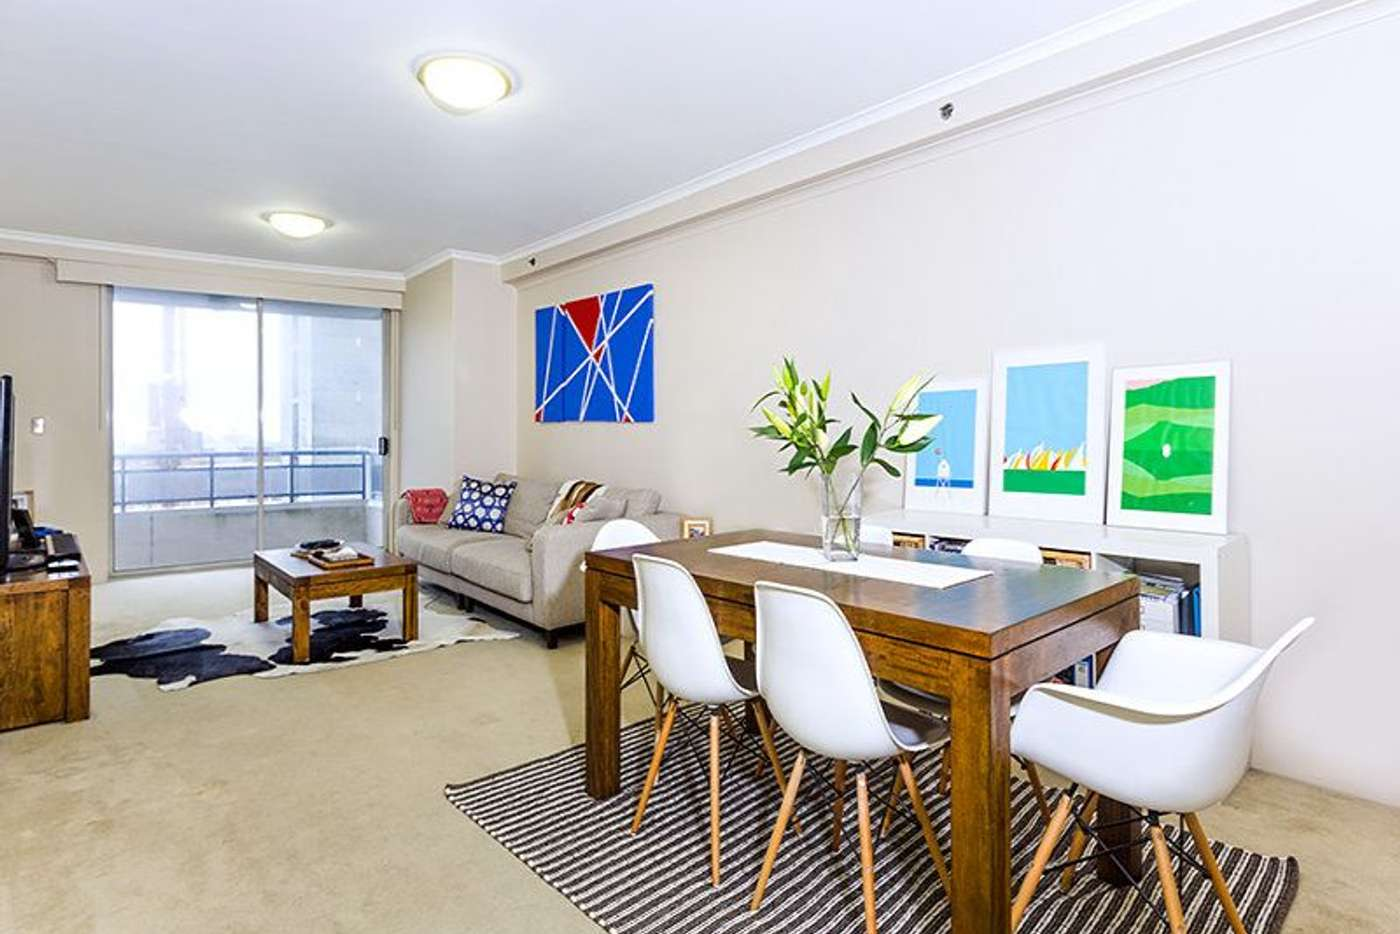 Sixth view of Homely apartment listing, 68/1 Katherine Street, Chatswood NSW 2067